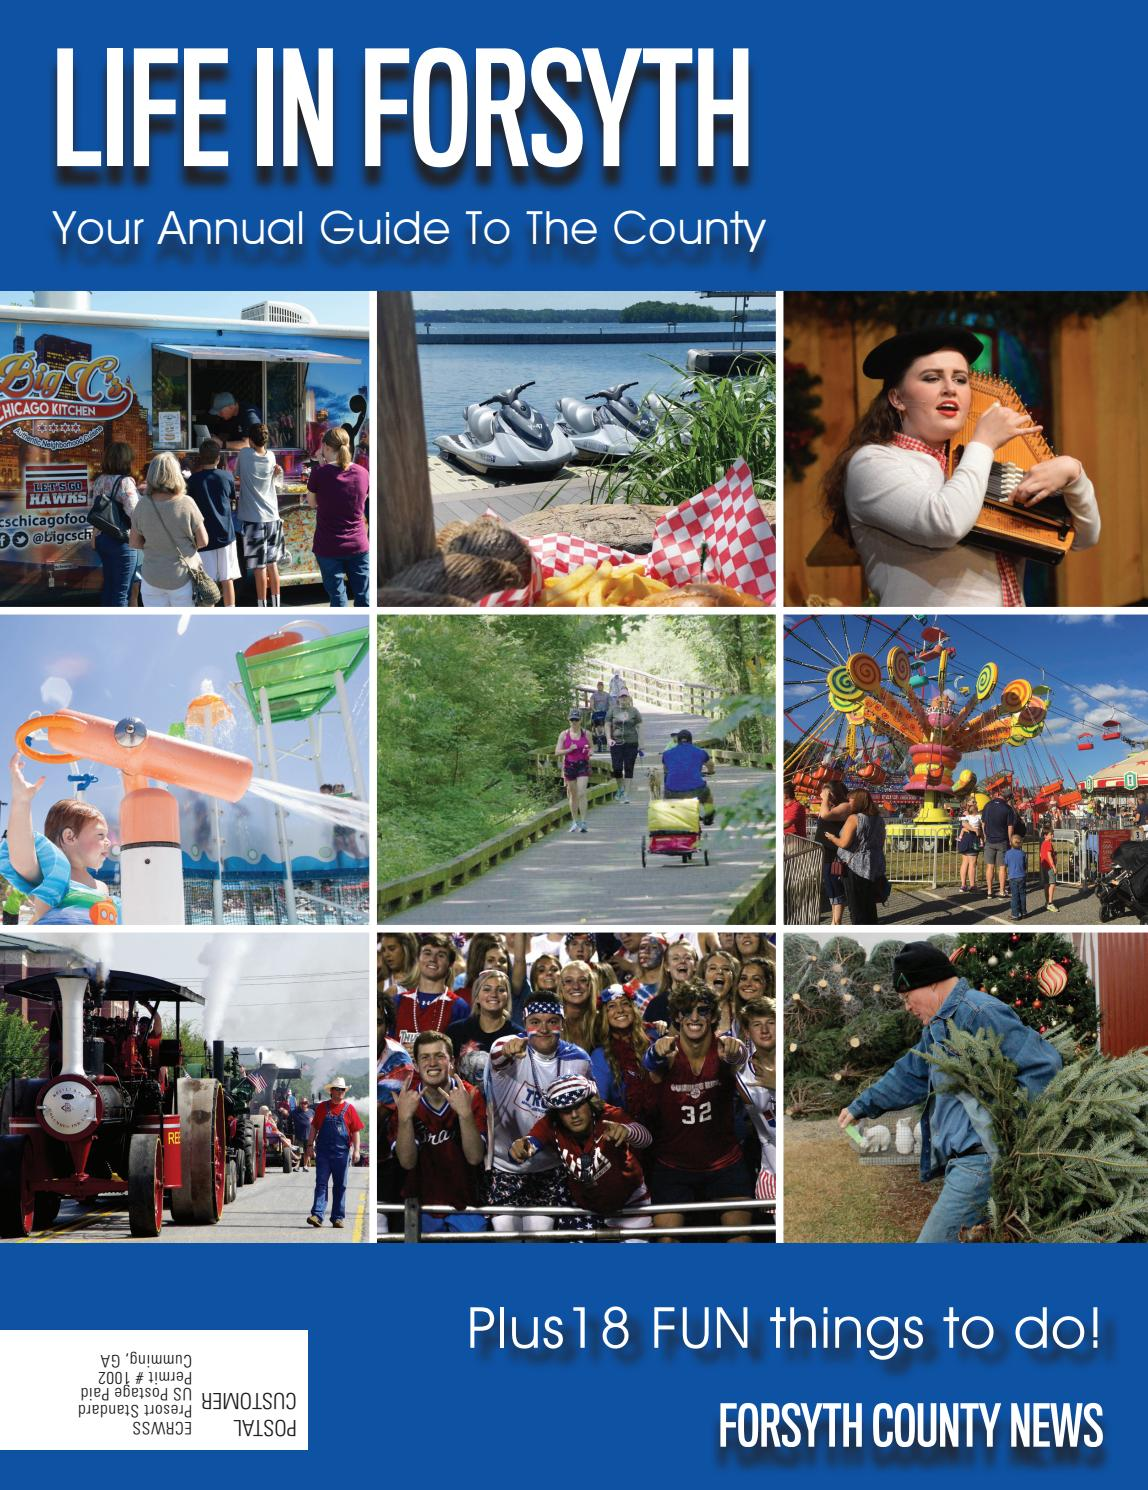 Life in Forsyth 2018 by Forsyth County News - issuu